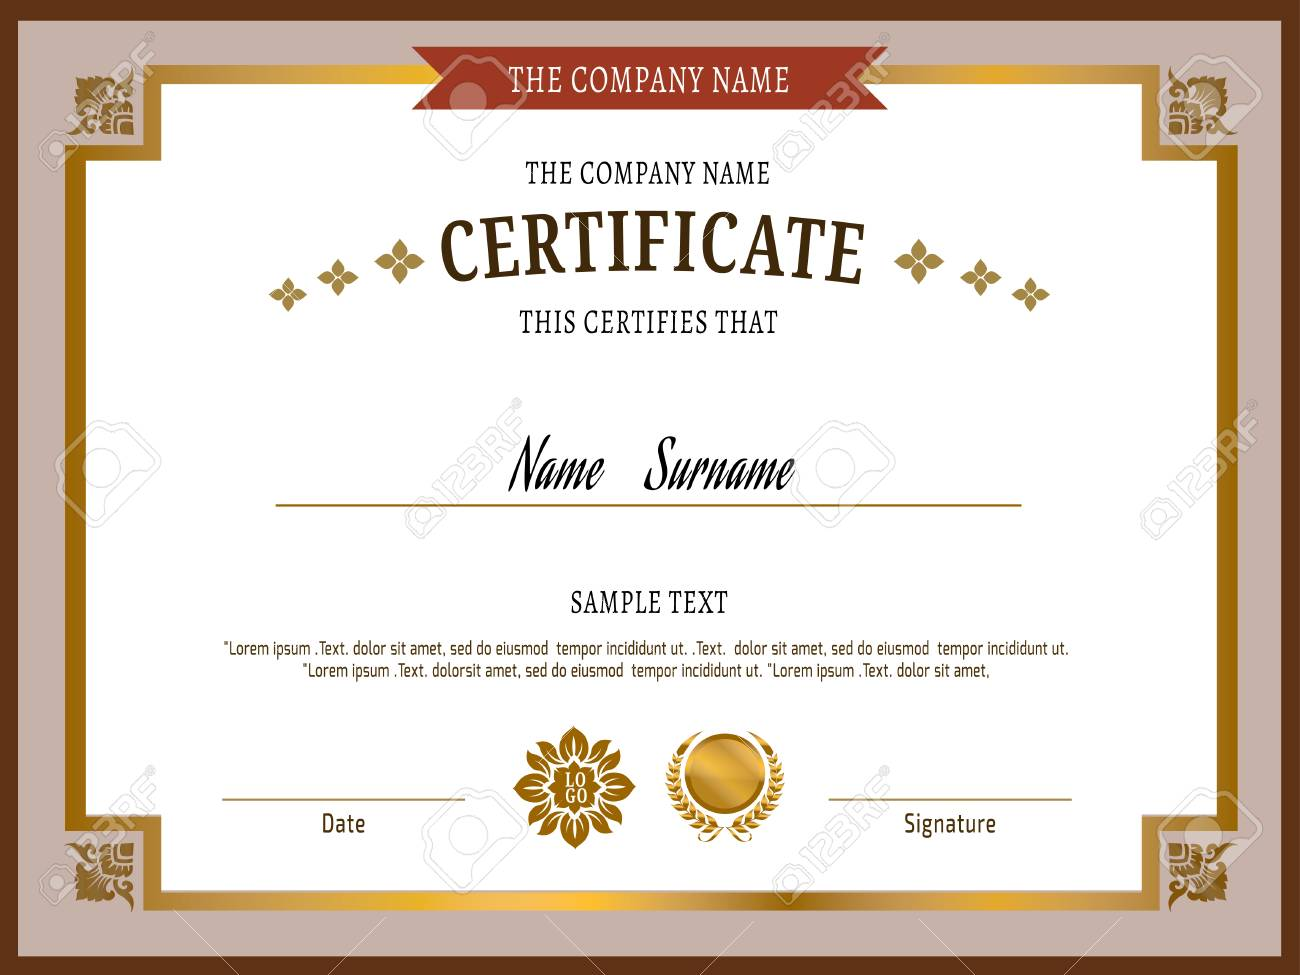 Gold Certificate Template Vector Illustration Royalty Free Cliparts